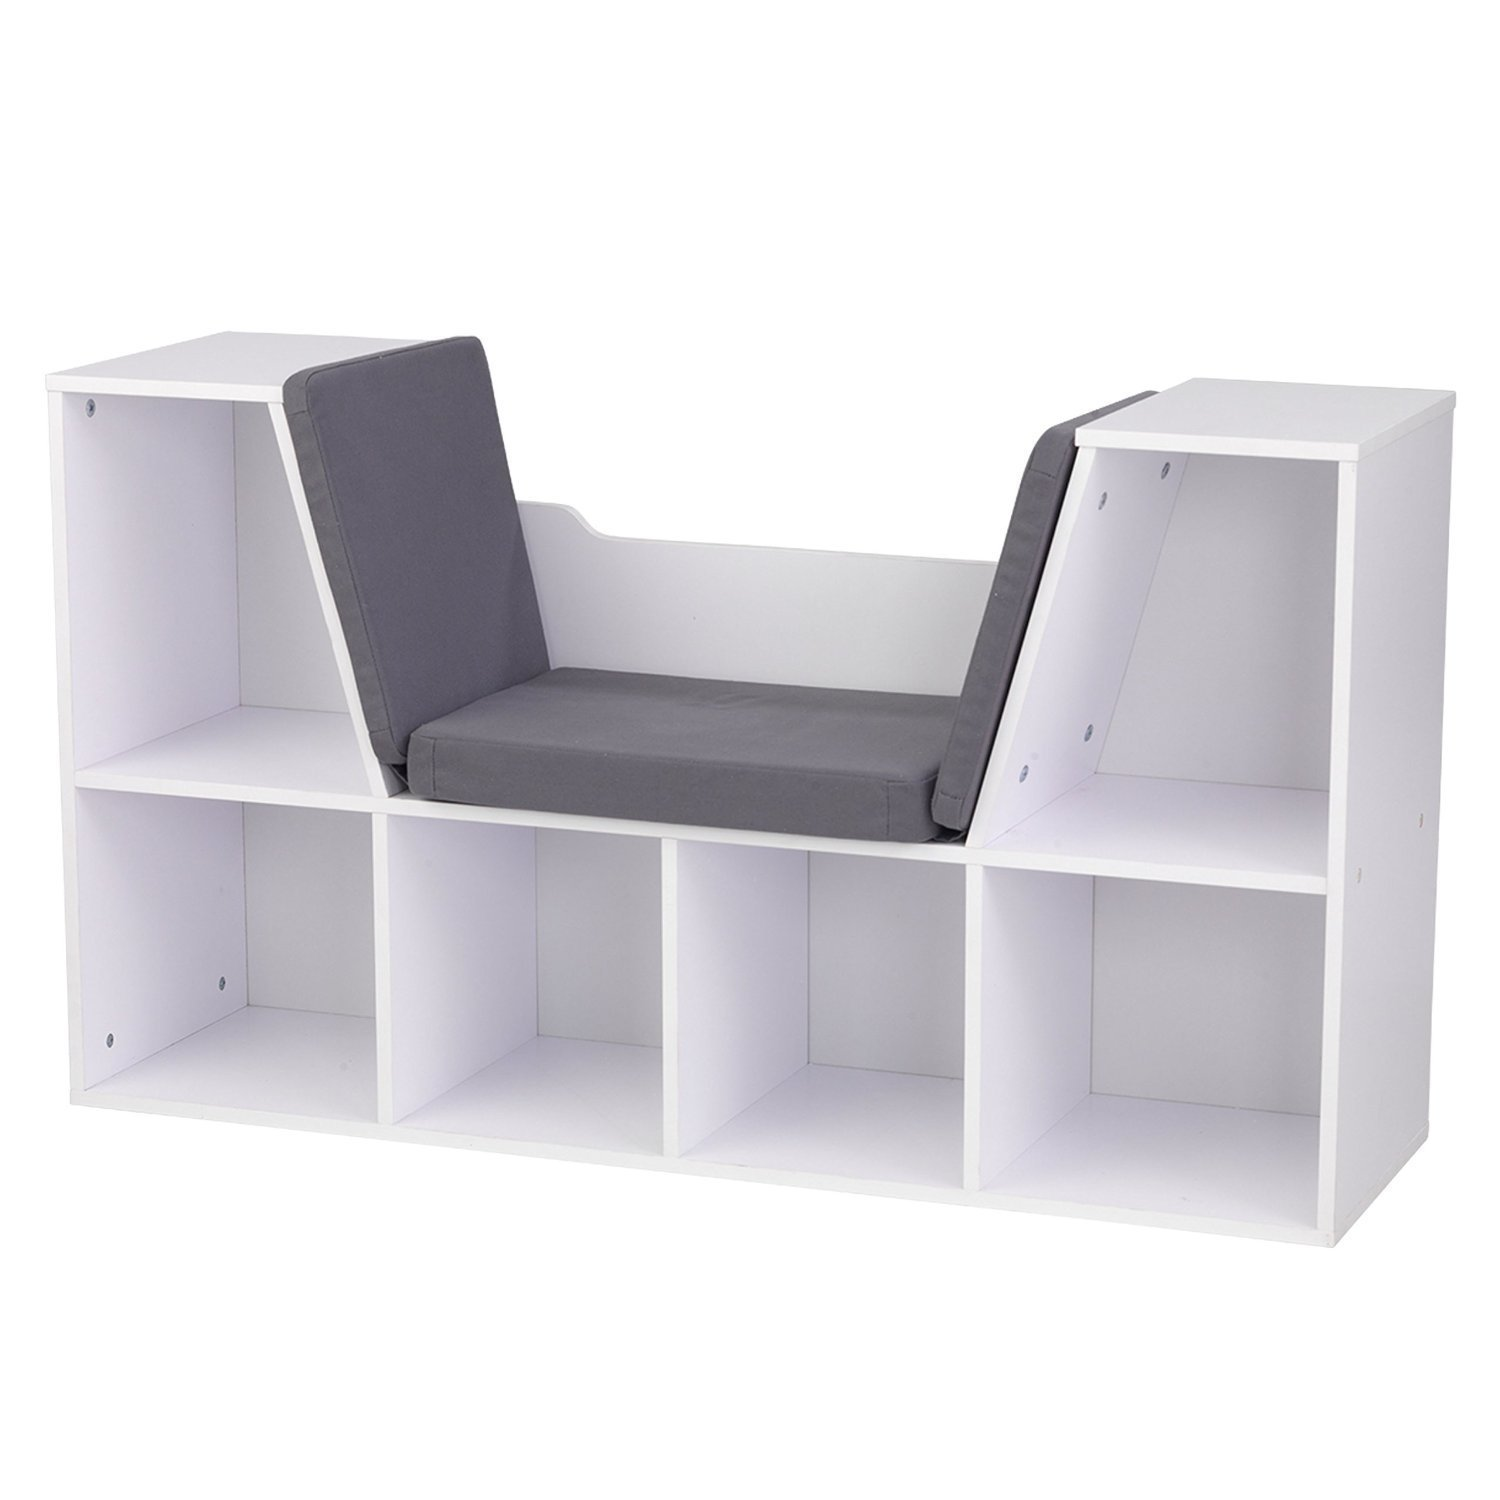 Amazon.com: Top Rated Best Seller Child Kids White Wood Comfy Reading  Learning Center Nook Furniture With Padded Cushion Seat- Generous Storage  Organizer ... - Amazon.com: Top Rated Best Seller Child Kids White Wood Comfy